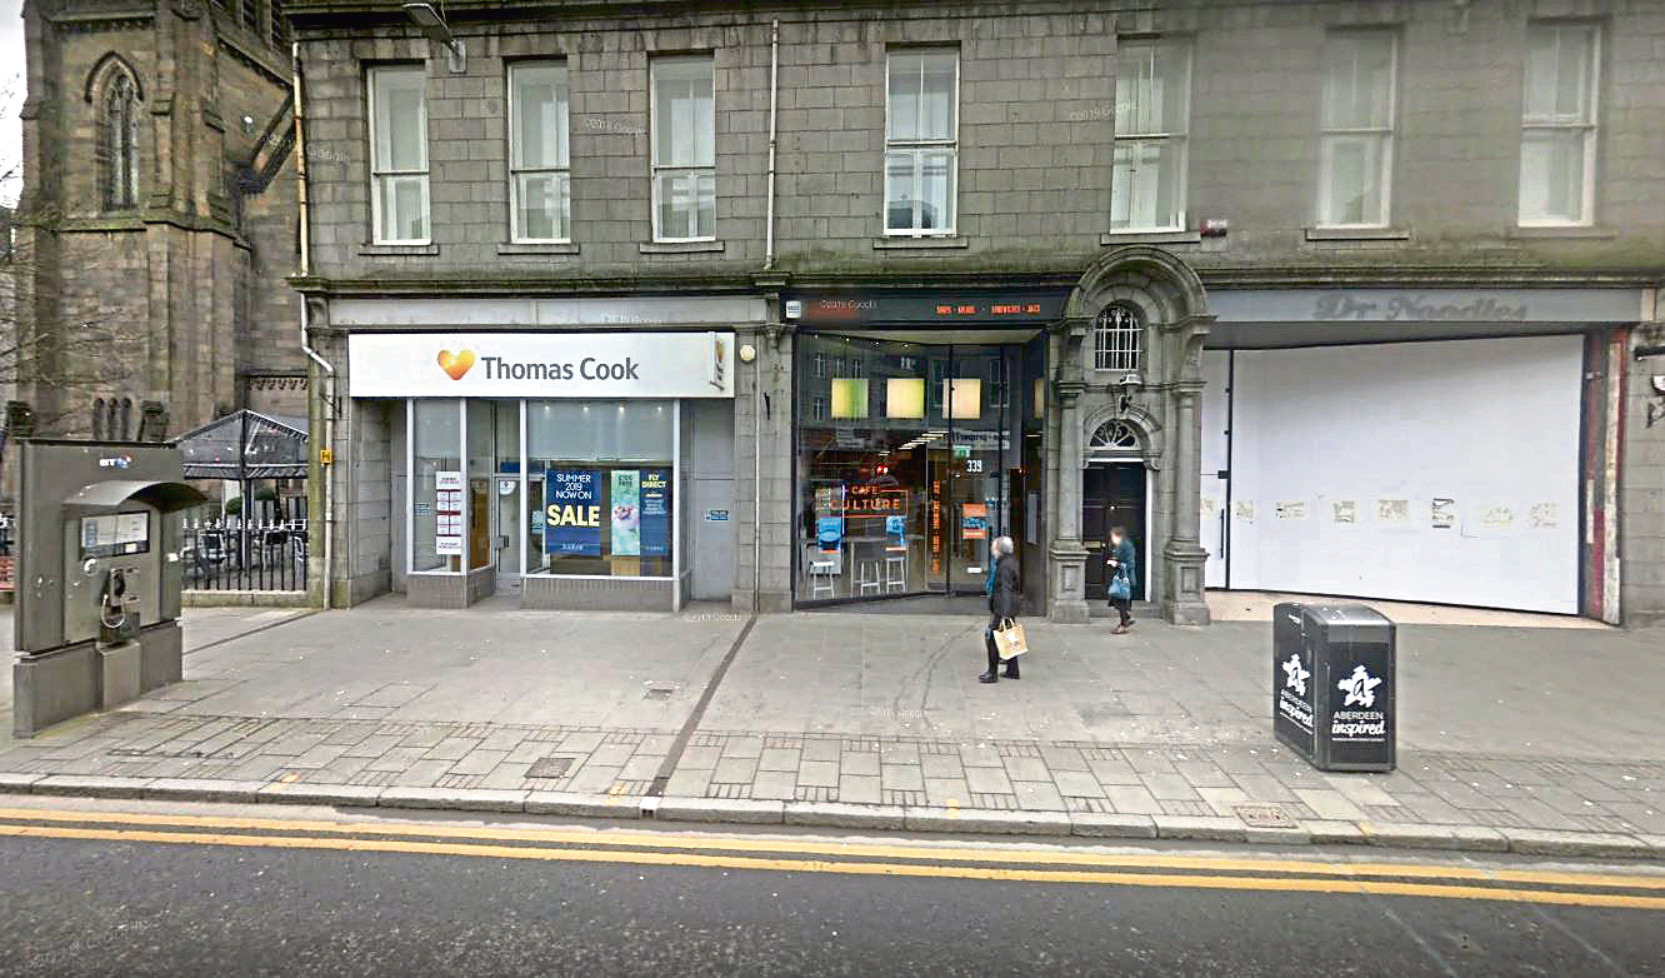 The site of the planned new fusion restaurant on Union Street